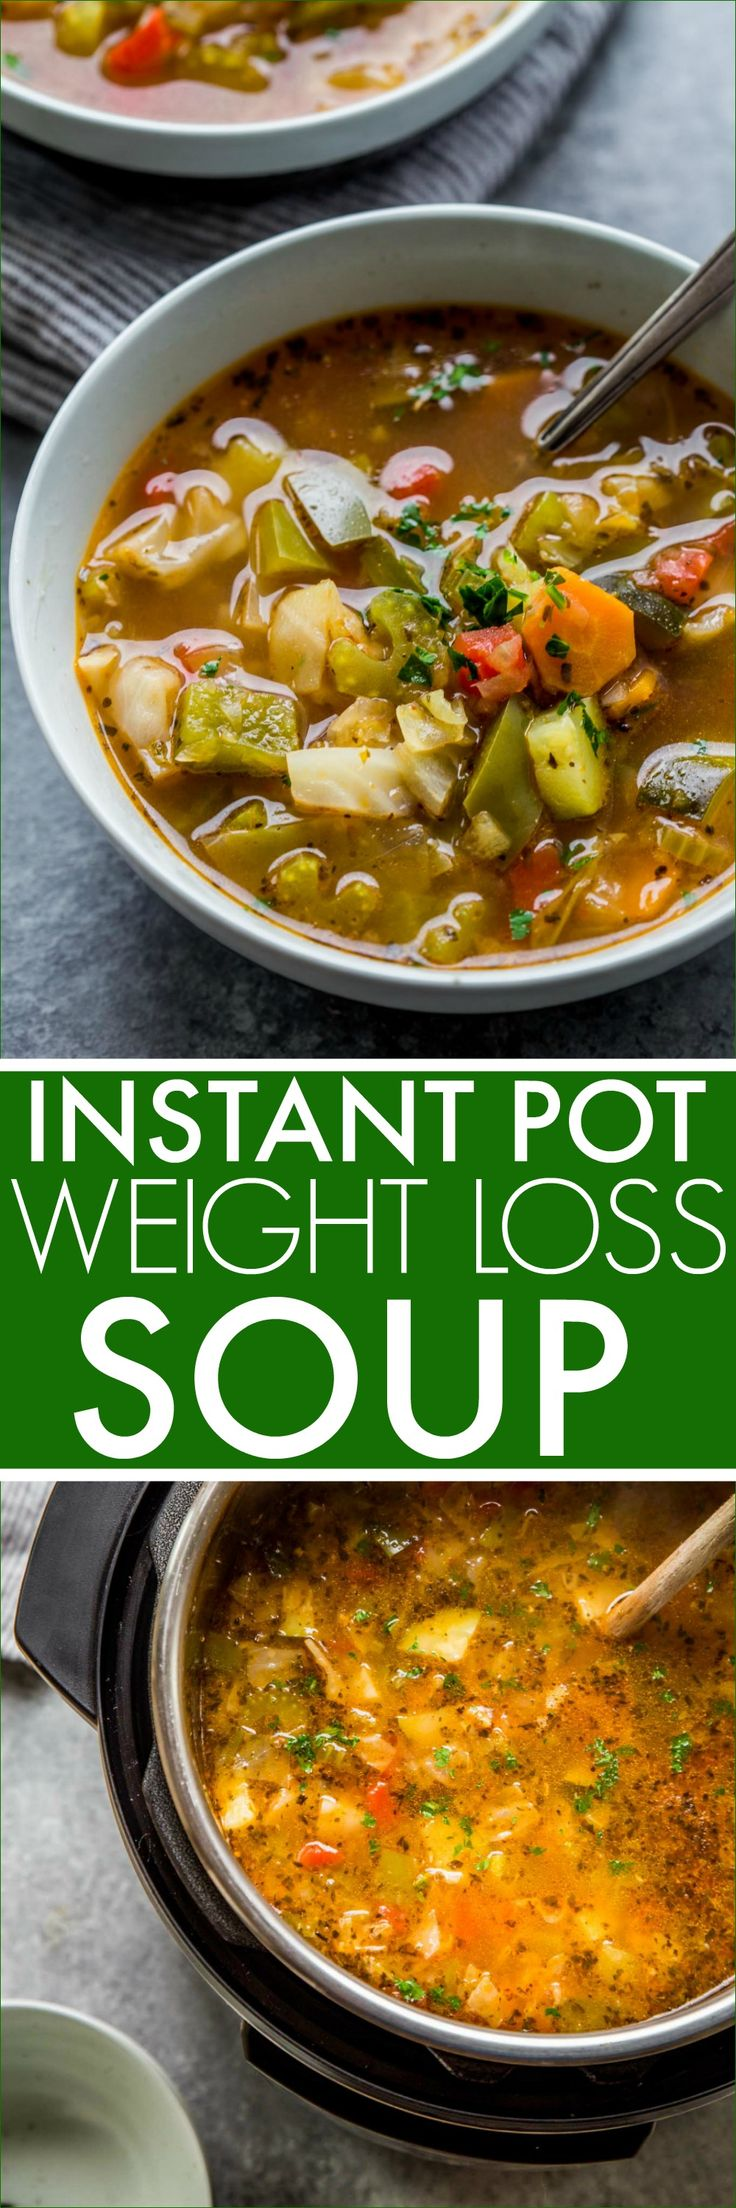 Instant Pot Weight Loss Cabbage Soup